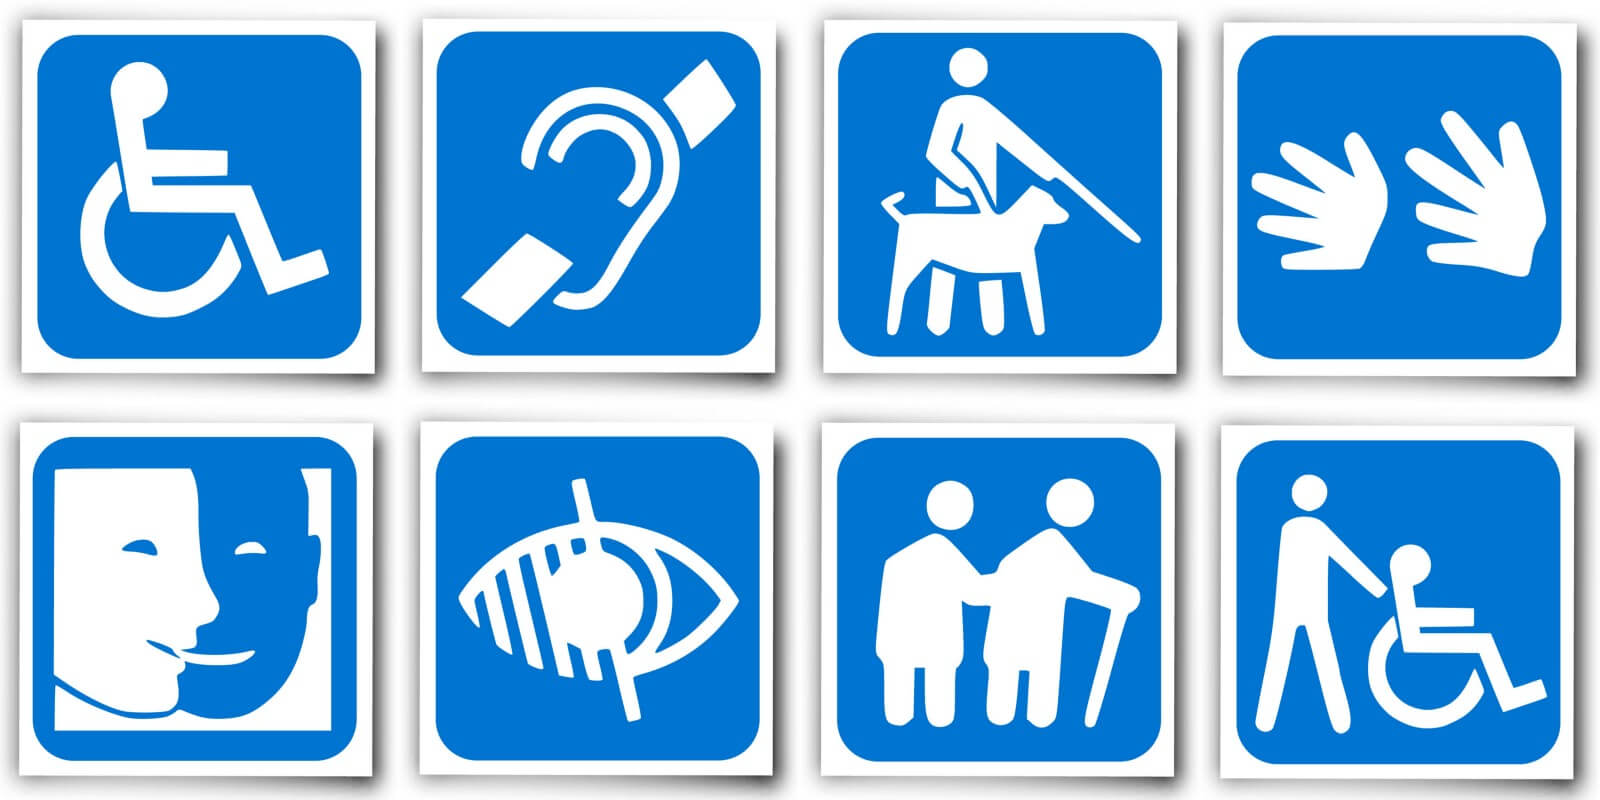 Eight blue icons representing different disabilities including mobility, hearing, legal blindness, dexterity, mental health, partial vision loss, aging, and assistance of someone with a mobility problem.